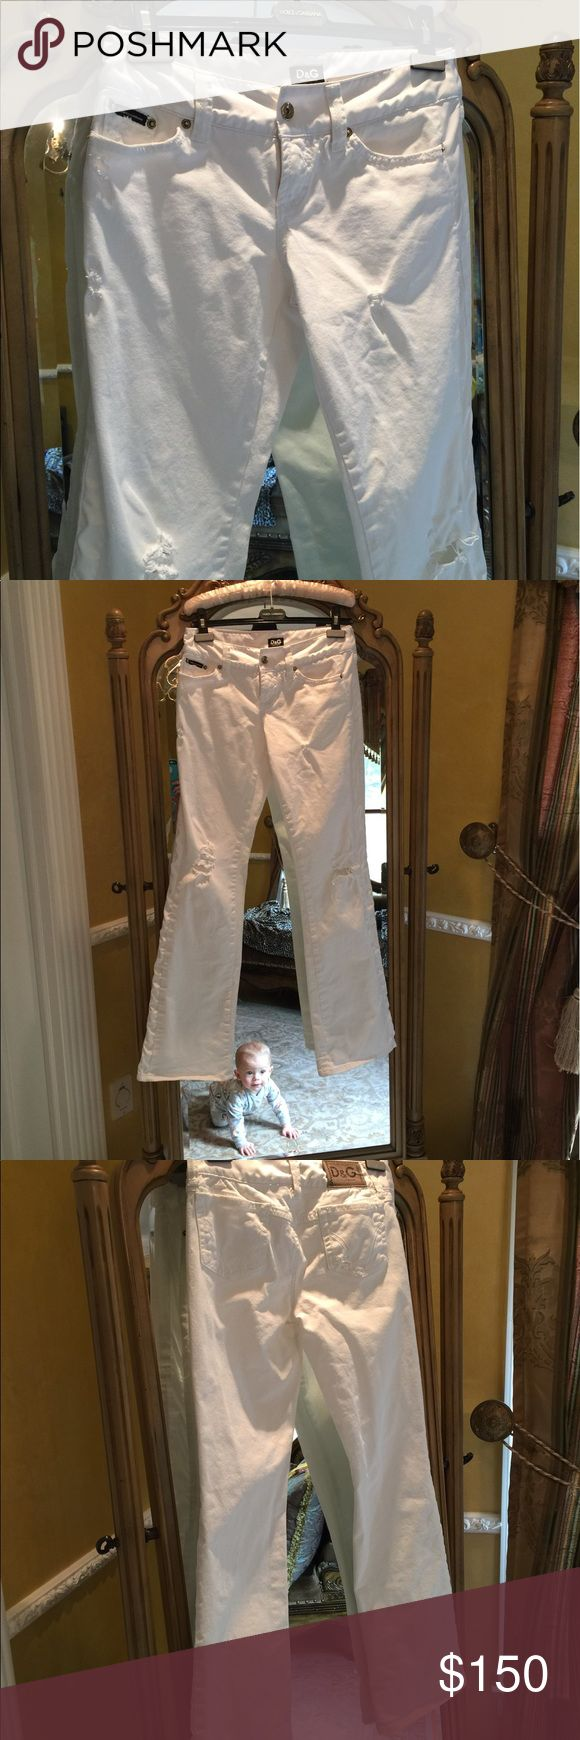 Dolce & Gabbana destroyed denim & satin tux jeans Beautiful low rise white denim jeans with tuxedo white satin like stripes down the side and at the waist band.  Only worn a few times.  Italia size 42 Dolce & Gabbana Jeans Straight Leg